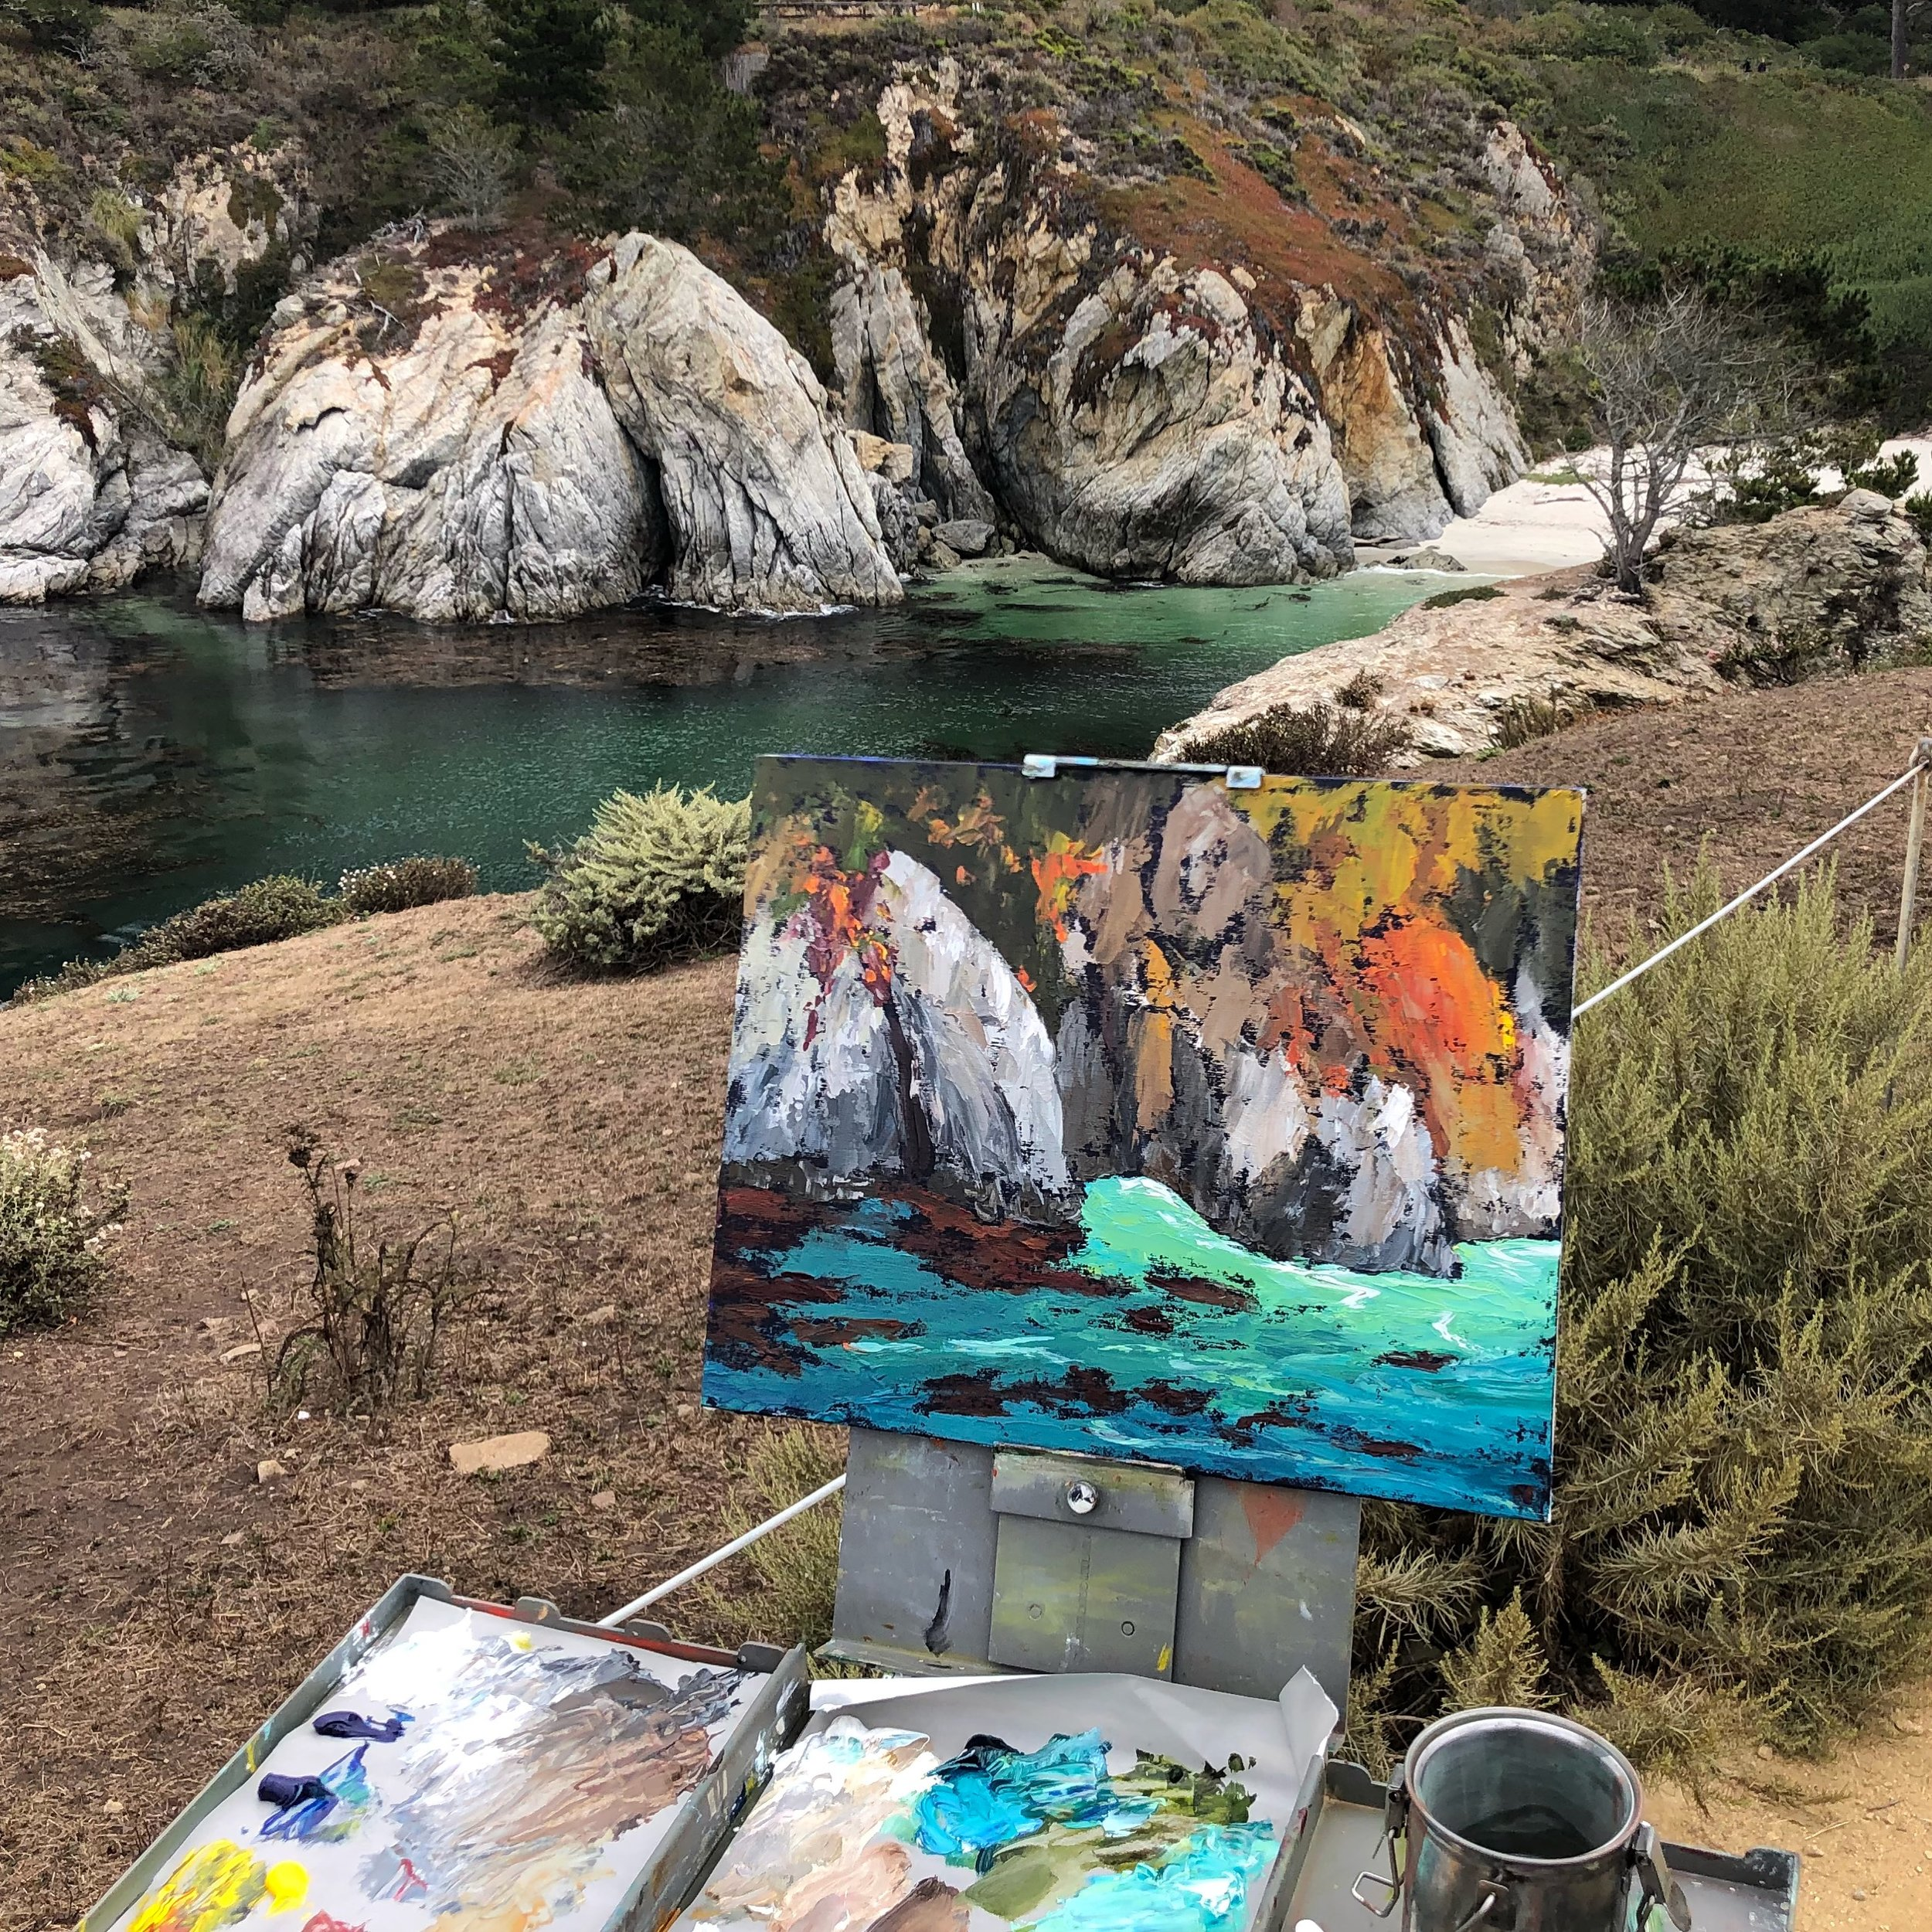 Plein Air painting at Point Lobos. This was actually my second painting at this spot.  I was with a group of artists and the first painting I worked on for almost two hours just wasn't working.  With 30 minutes to go before our group was to meet and critique each others work, I grabbed my palette knife and knocked this out.  Funny how sometimes the paintings I make knowing there's not much time to make them come out the best.